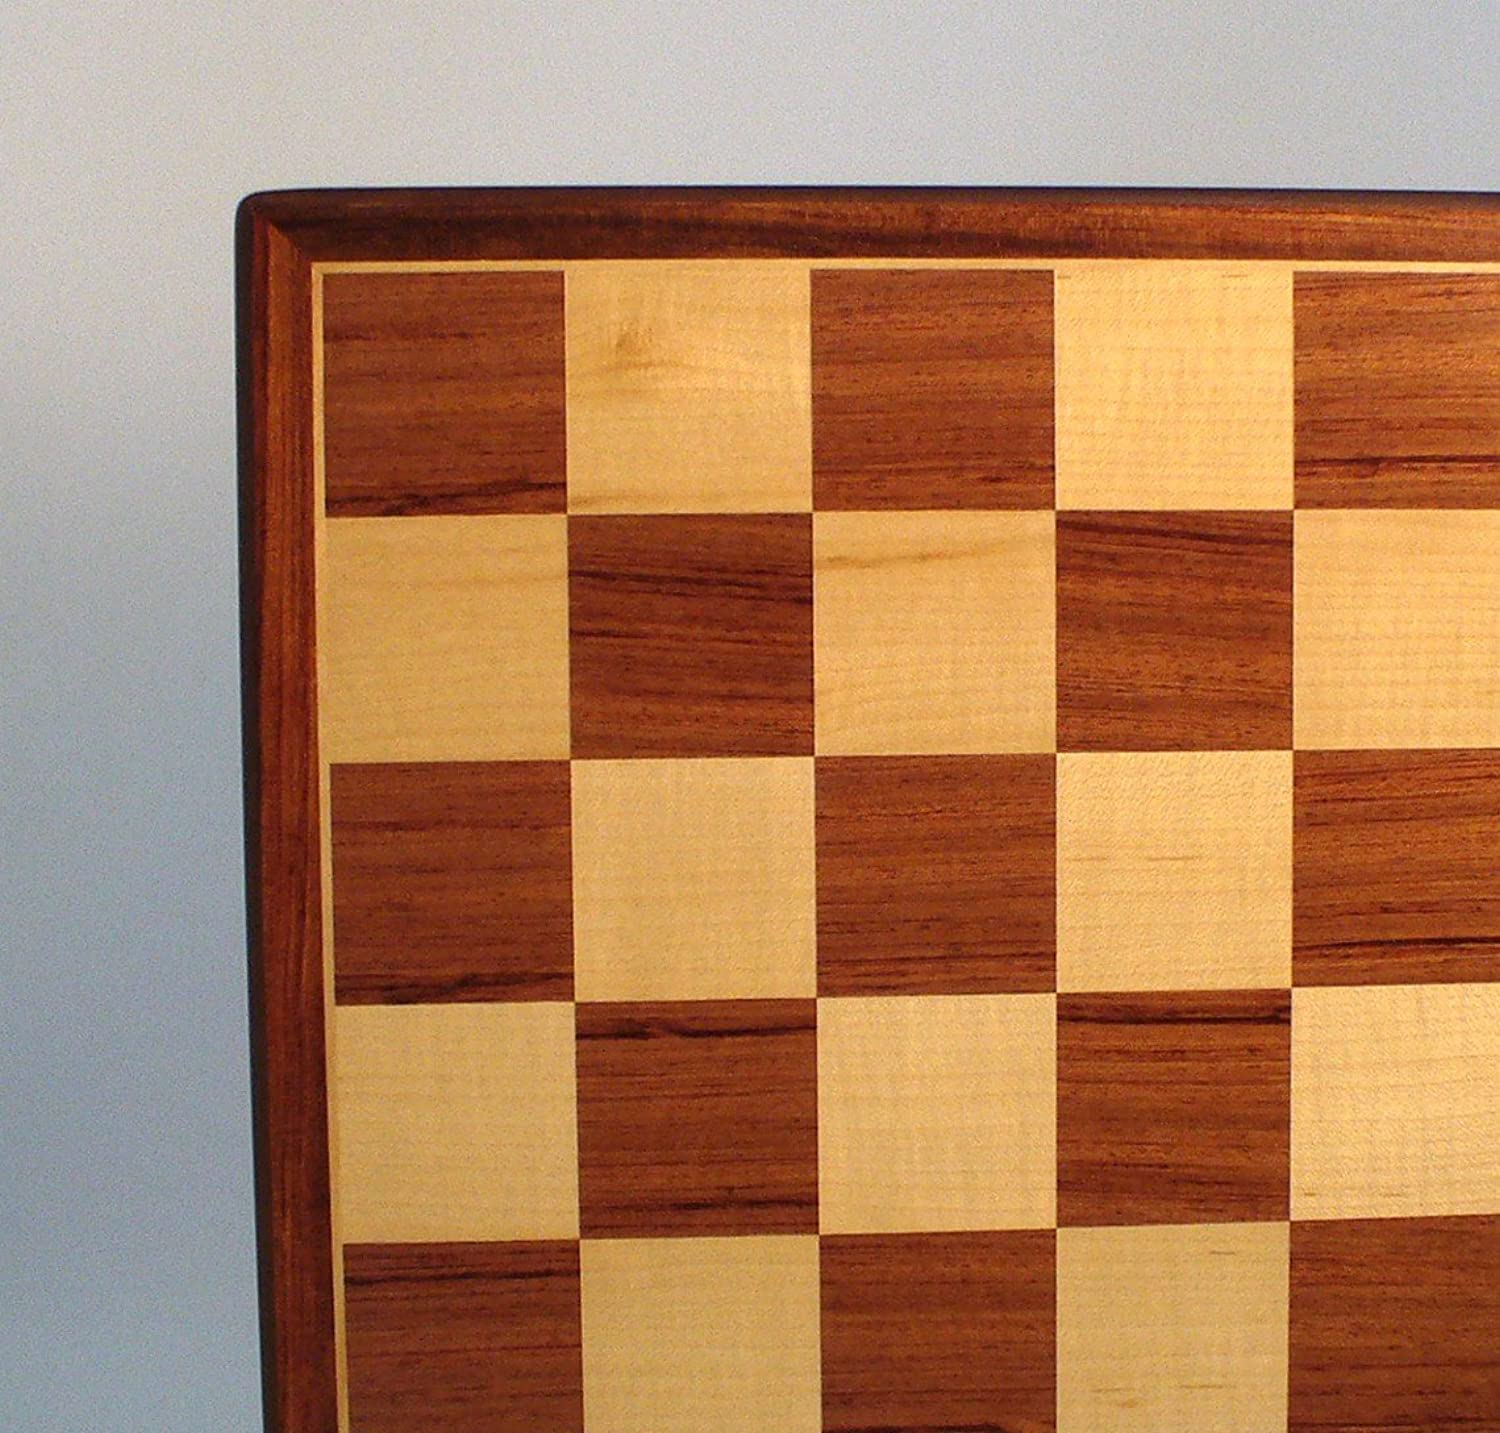 WW Chess 17inch Padauk and Maple Veneer Board